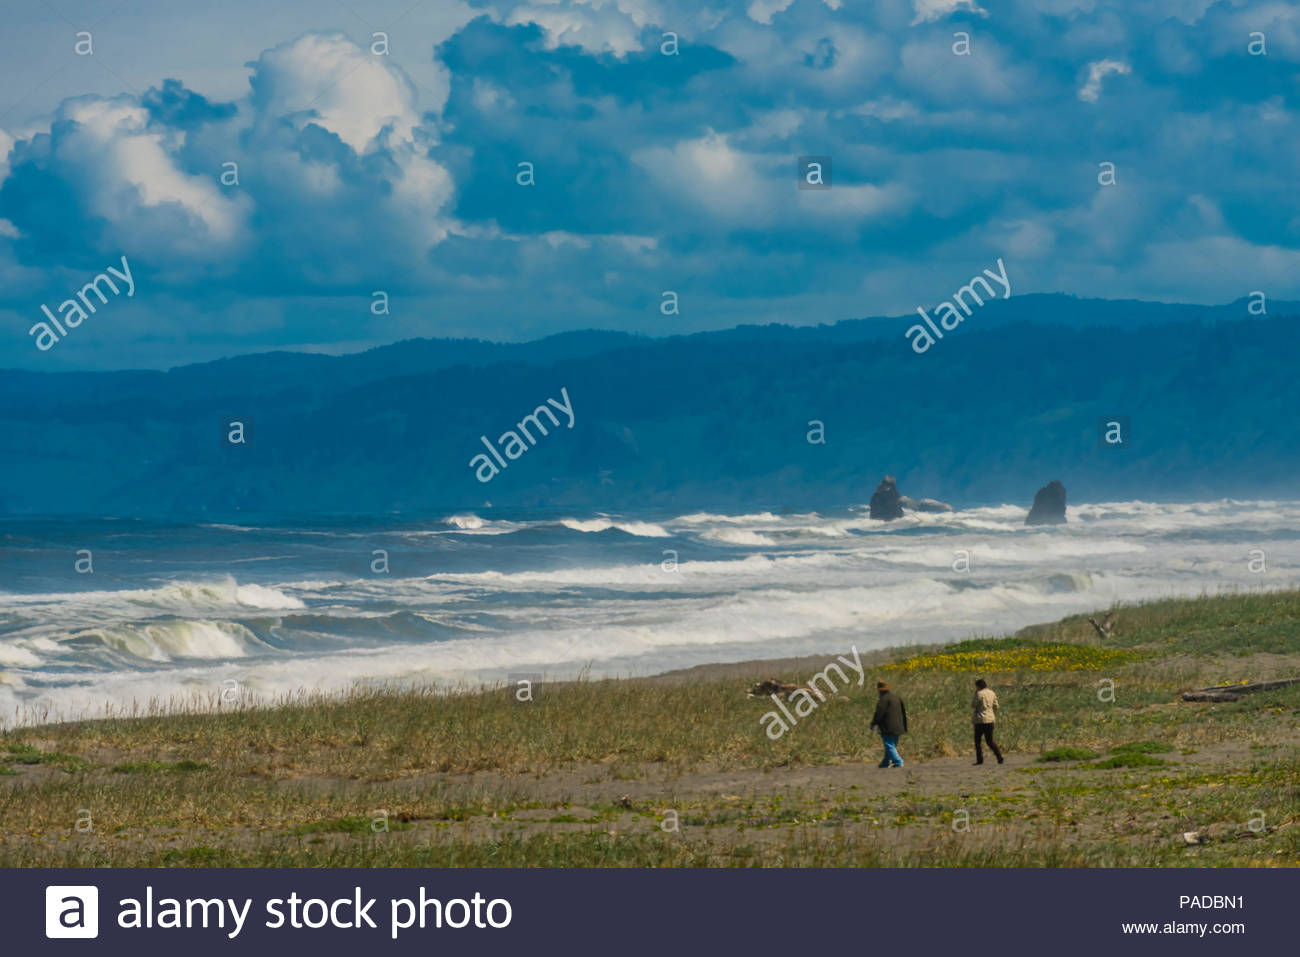 Tremendous surf hitting the beach at Redwood National Park, northern California USA. Stock Photo